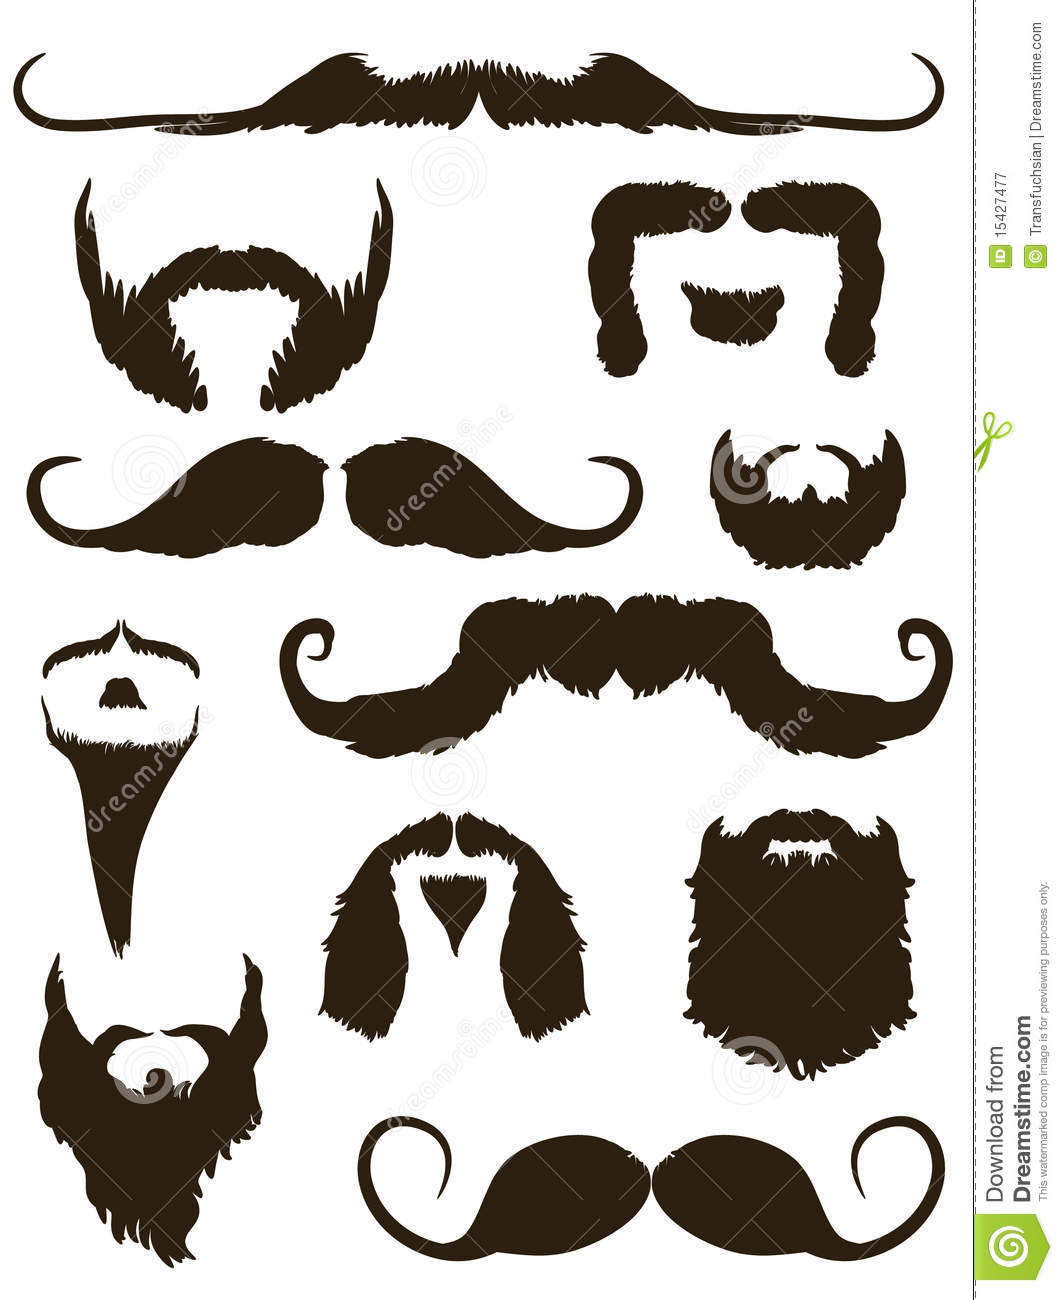 Mustache and goatee clipart.